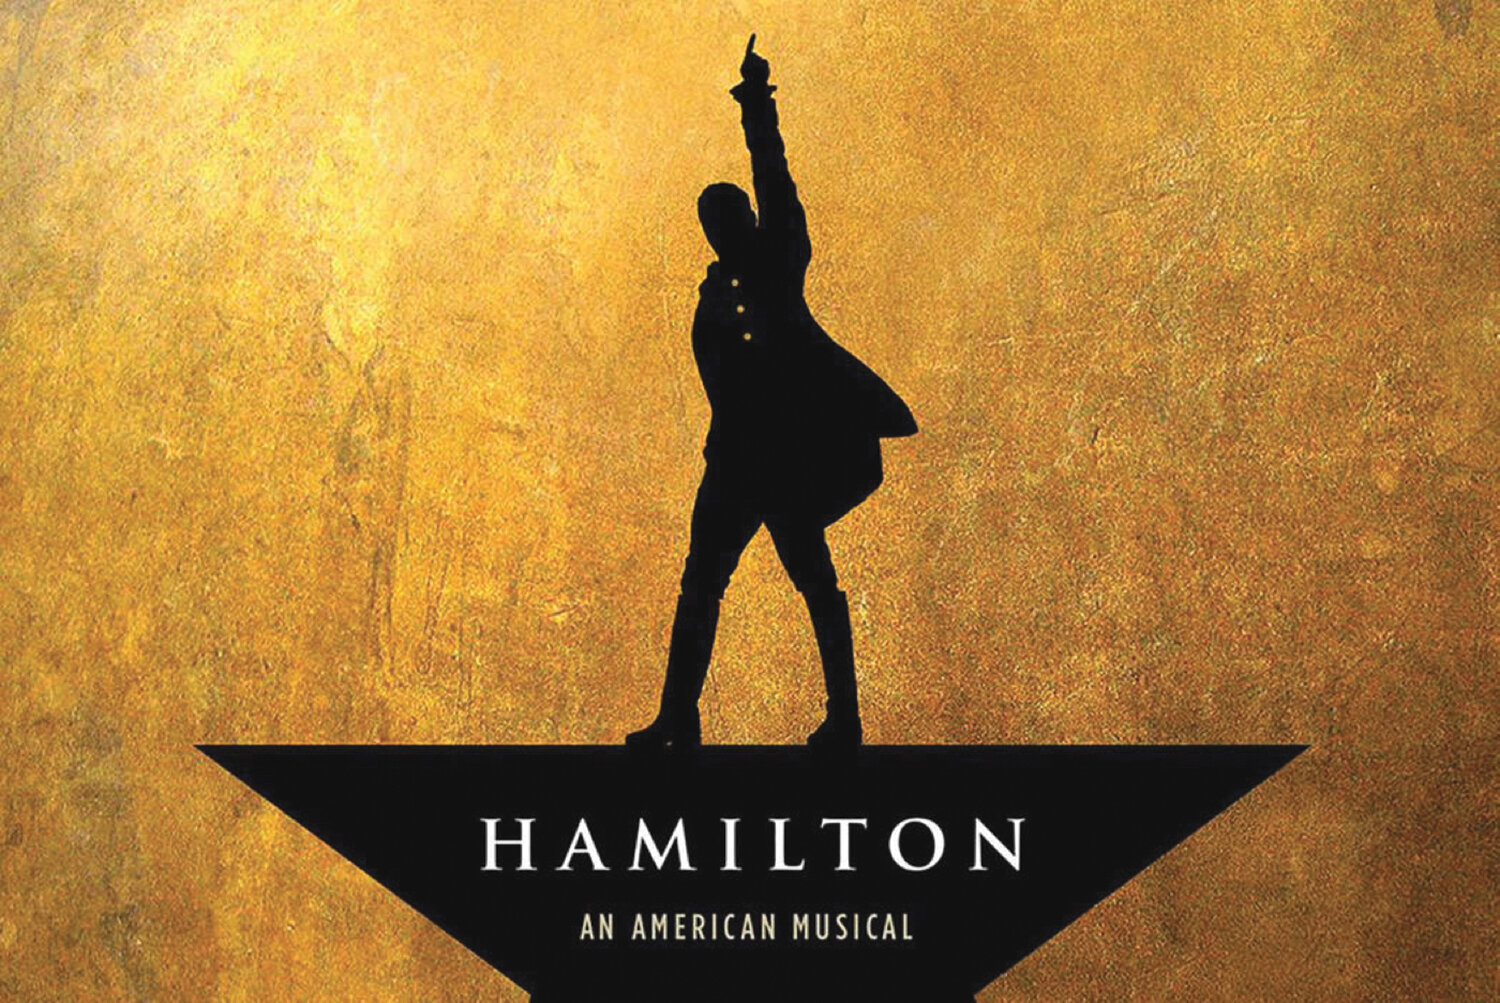 """""""Hamilton"""" isn't just entertaining, it's also energetic and enlightening. Do NOT throw away your . . . SHOT!"""